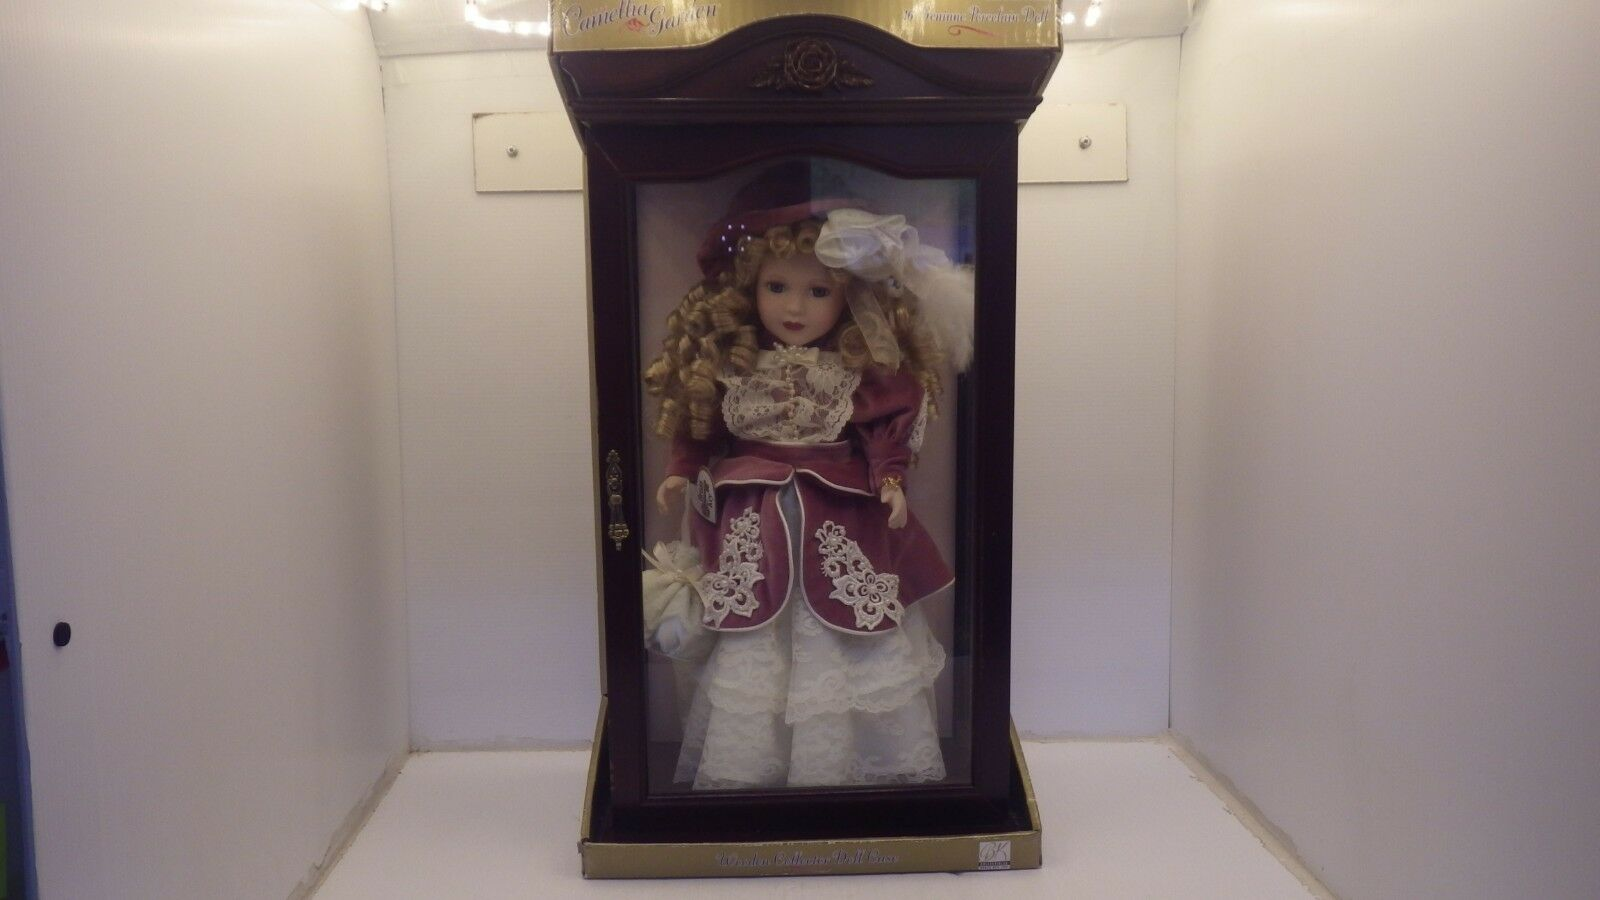 CAMELLIA GARDEN 16  GENUINE PORCELAIN DOLL IN GLASS AND WOOD CABINET,  2639, NIB